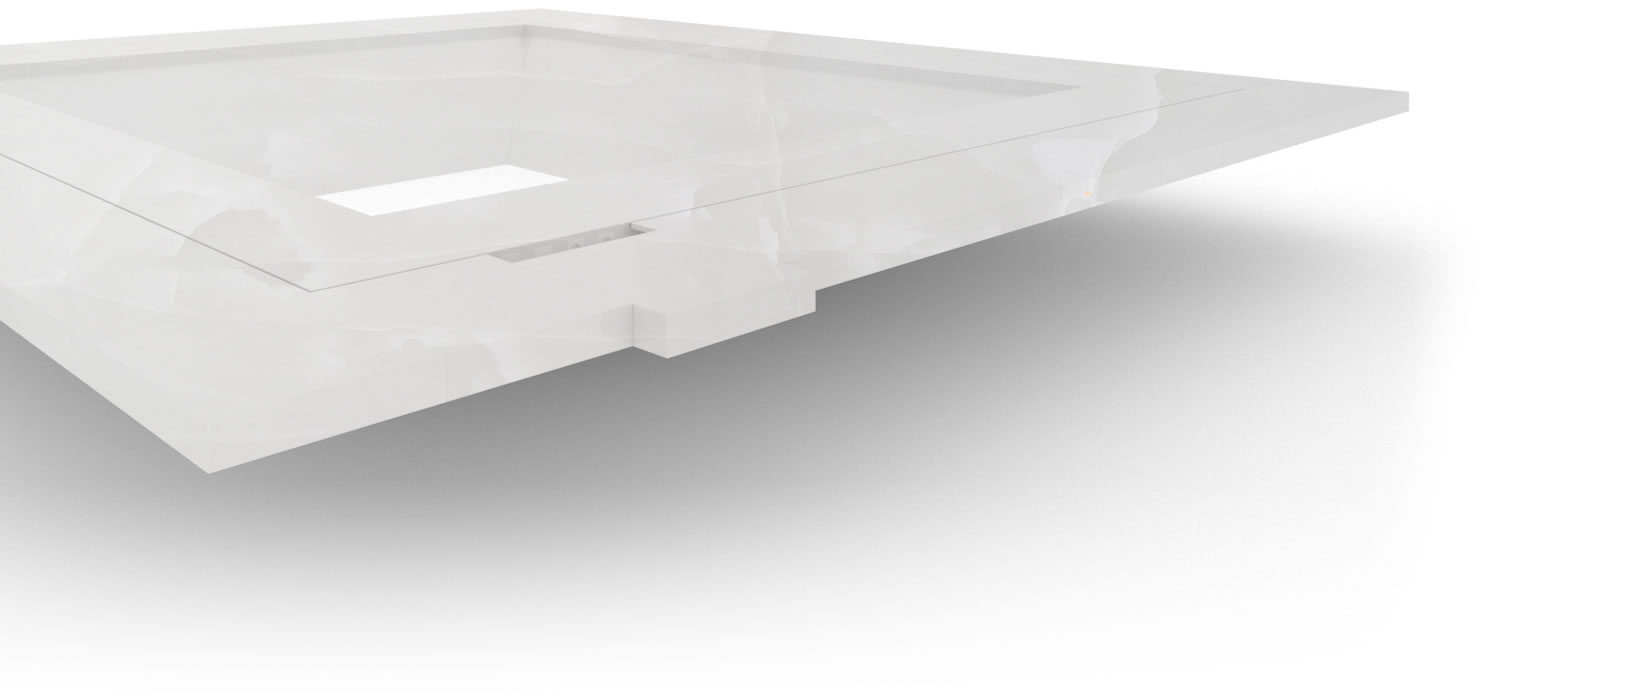 FELIX SCHWAKE BOARDROOM TABLE IV I courtyard structure onyx marble white modern courtyard boardroom table structure